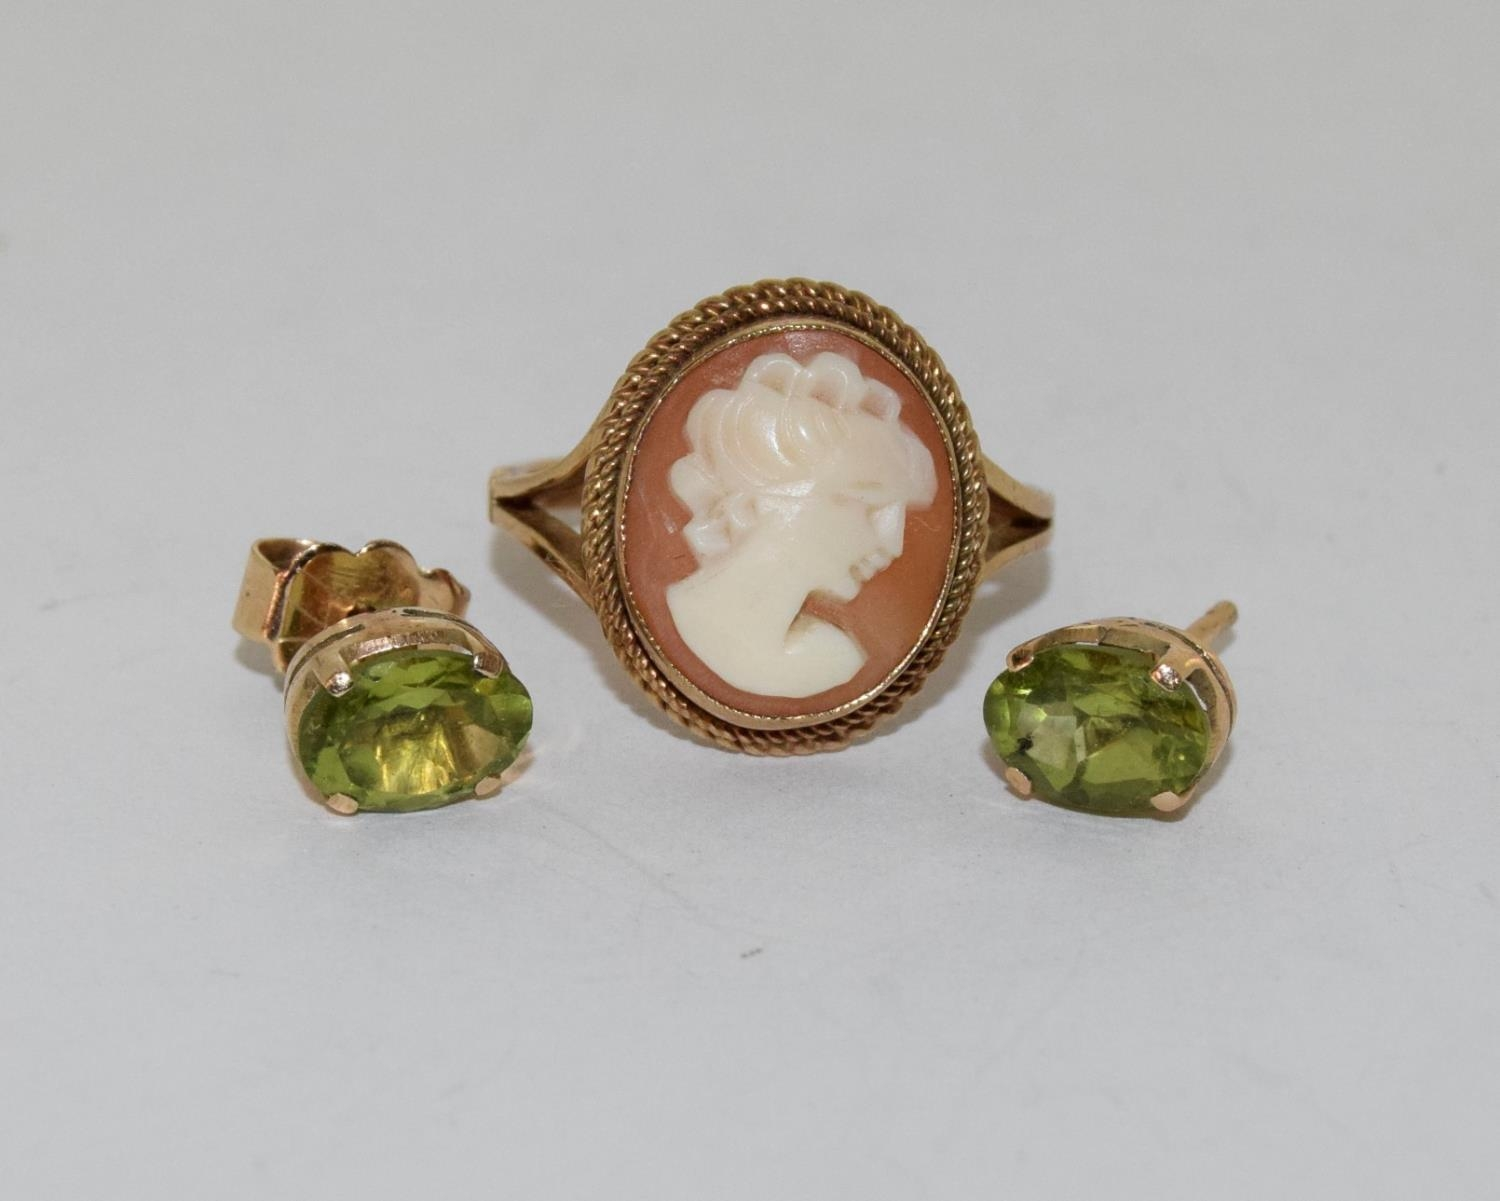 9ct gold ladies cameo ring together with a pair of gold peridot earrings